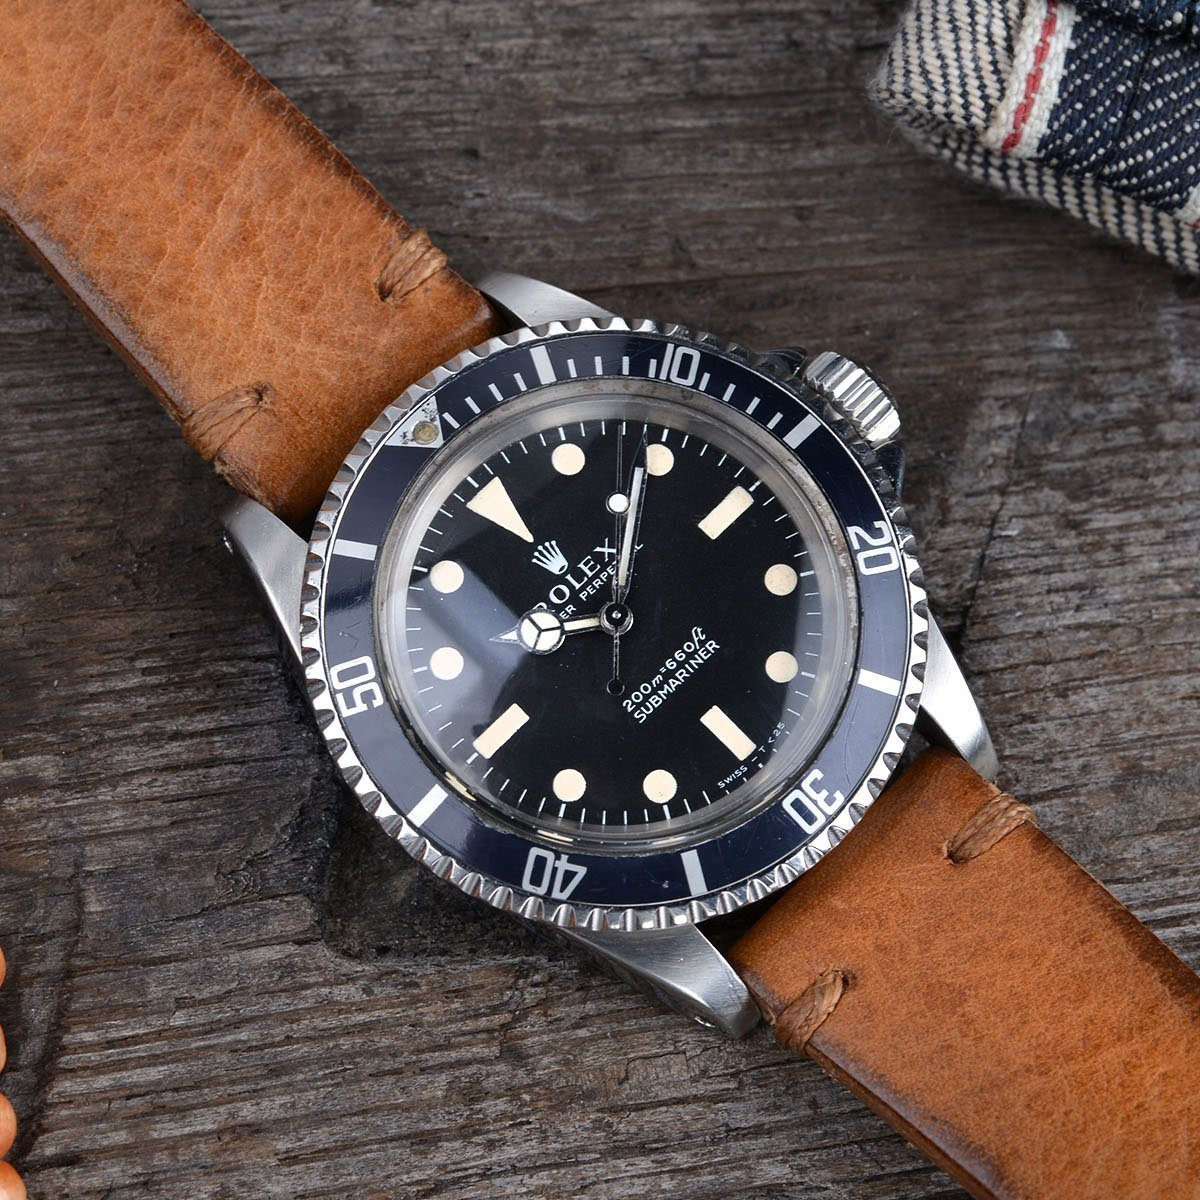 caring for your vintage rolex watch